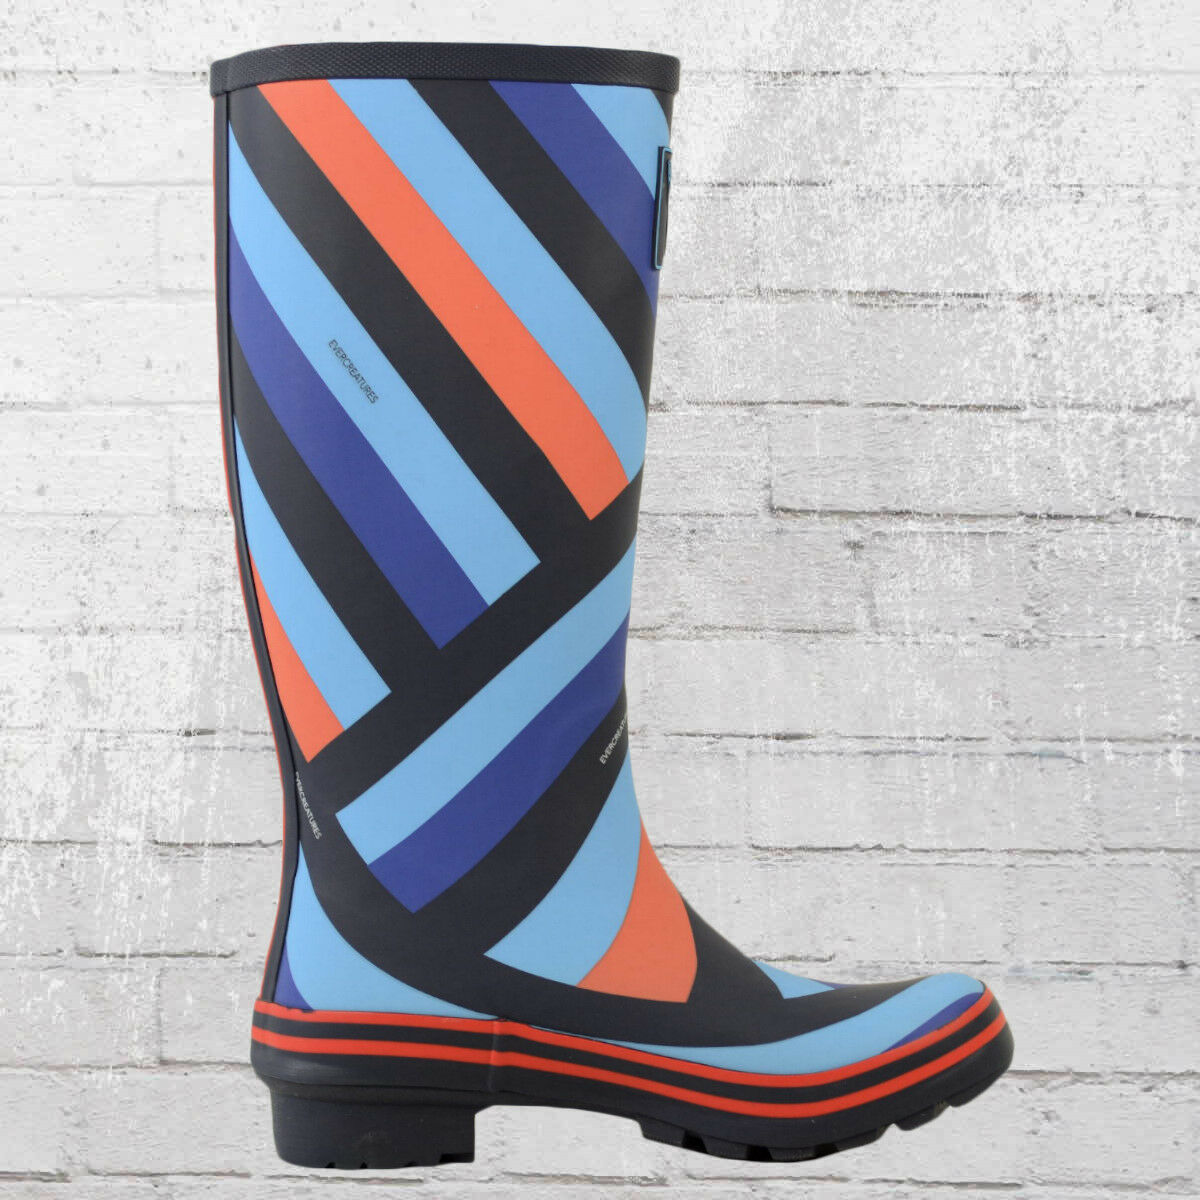 Evercreatures Wellington Frauen blau Gummistiefel Club navy blau Frauen Wellington Wellies 89cfc6